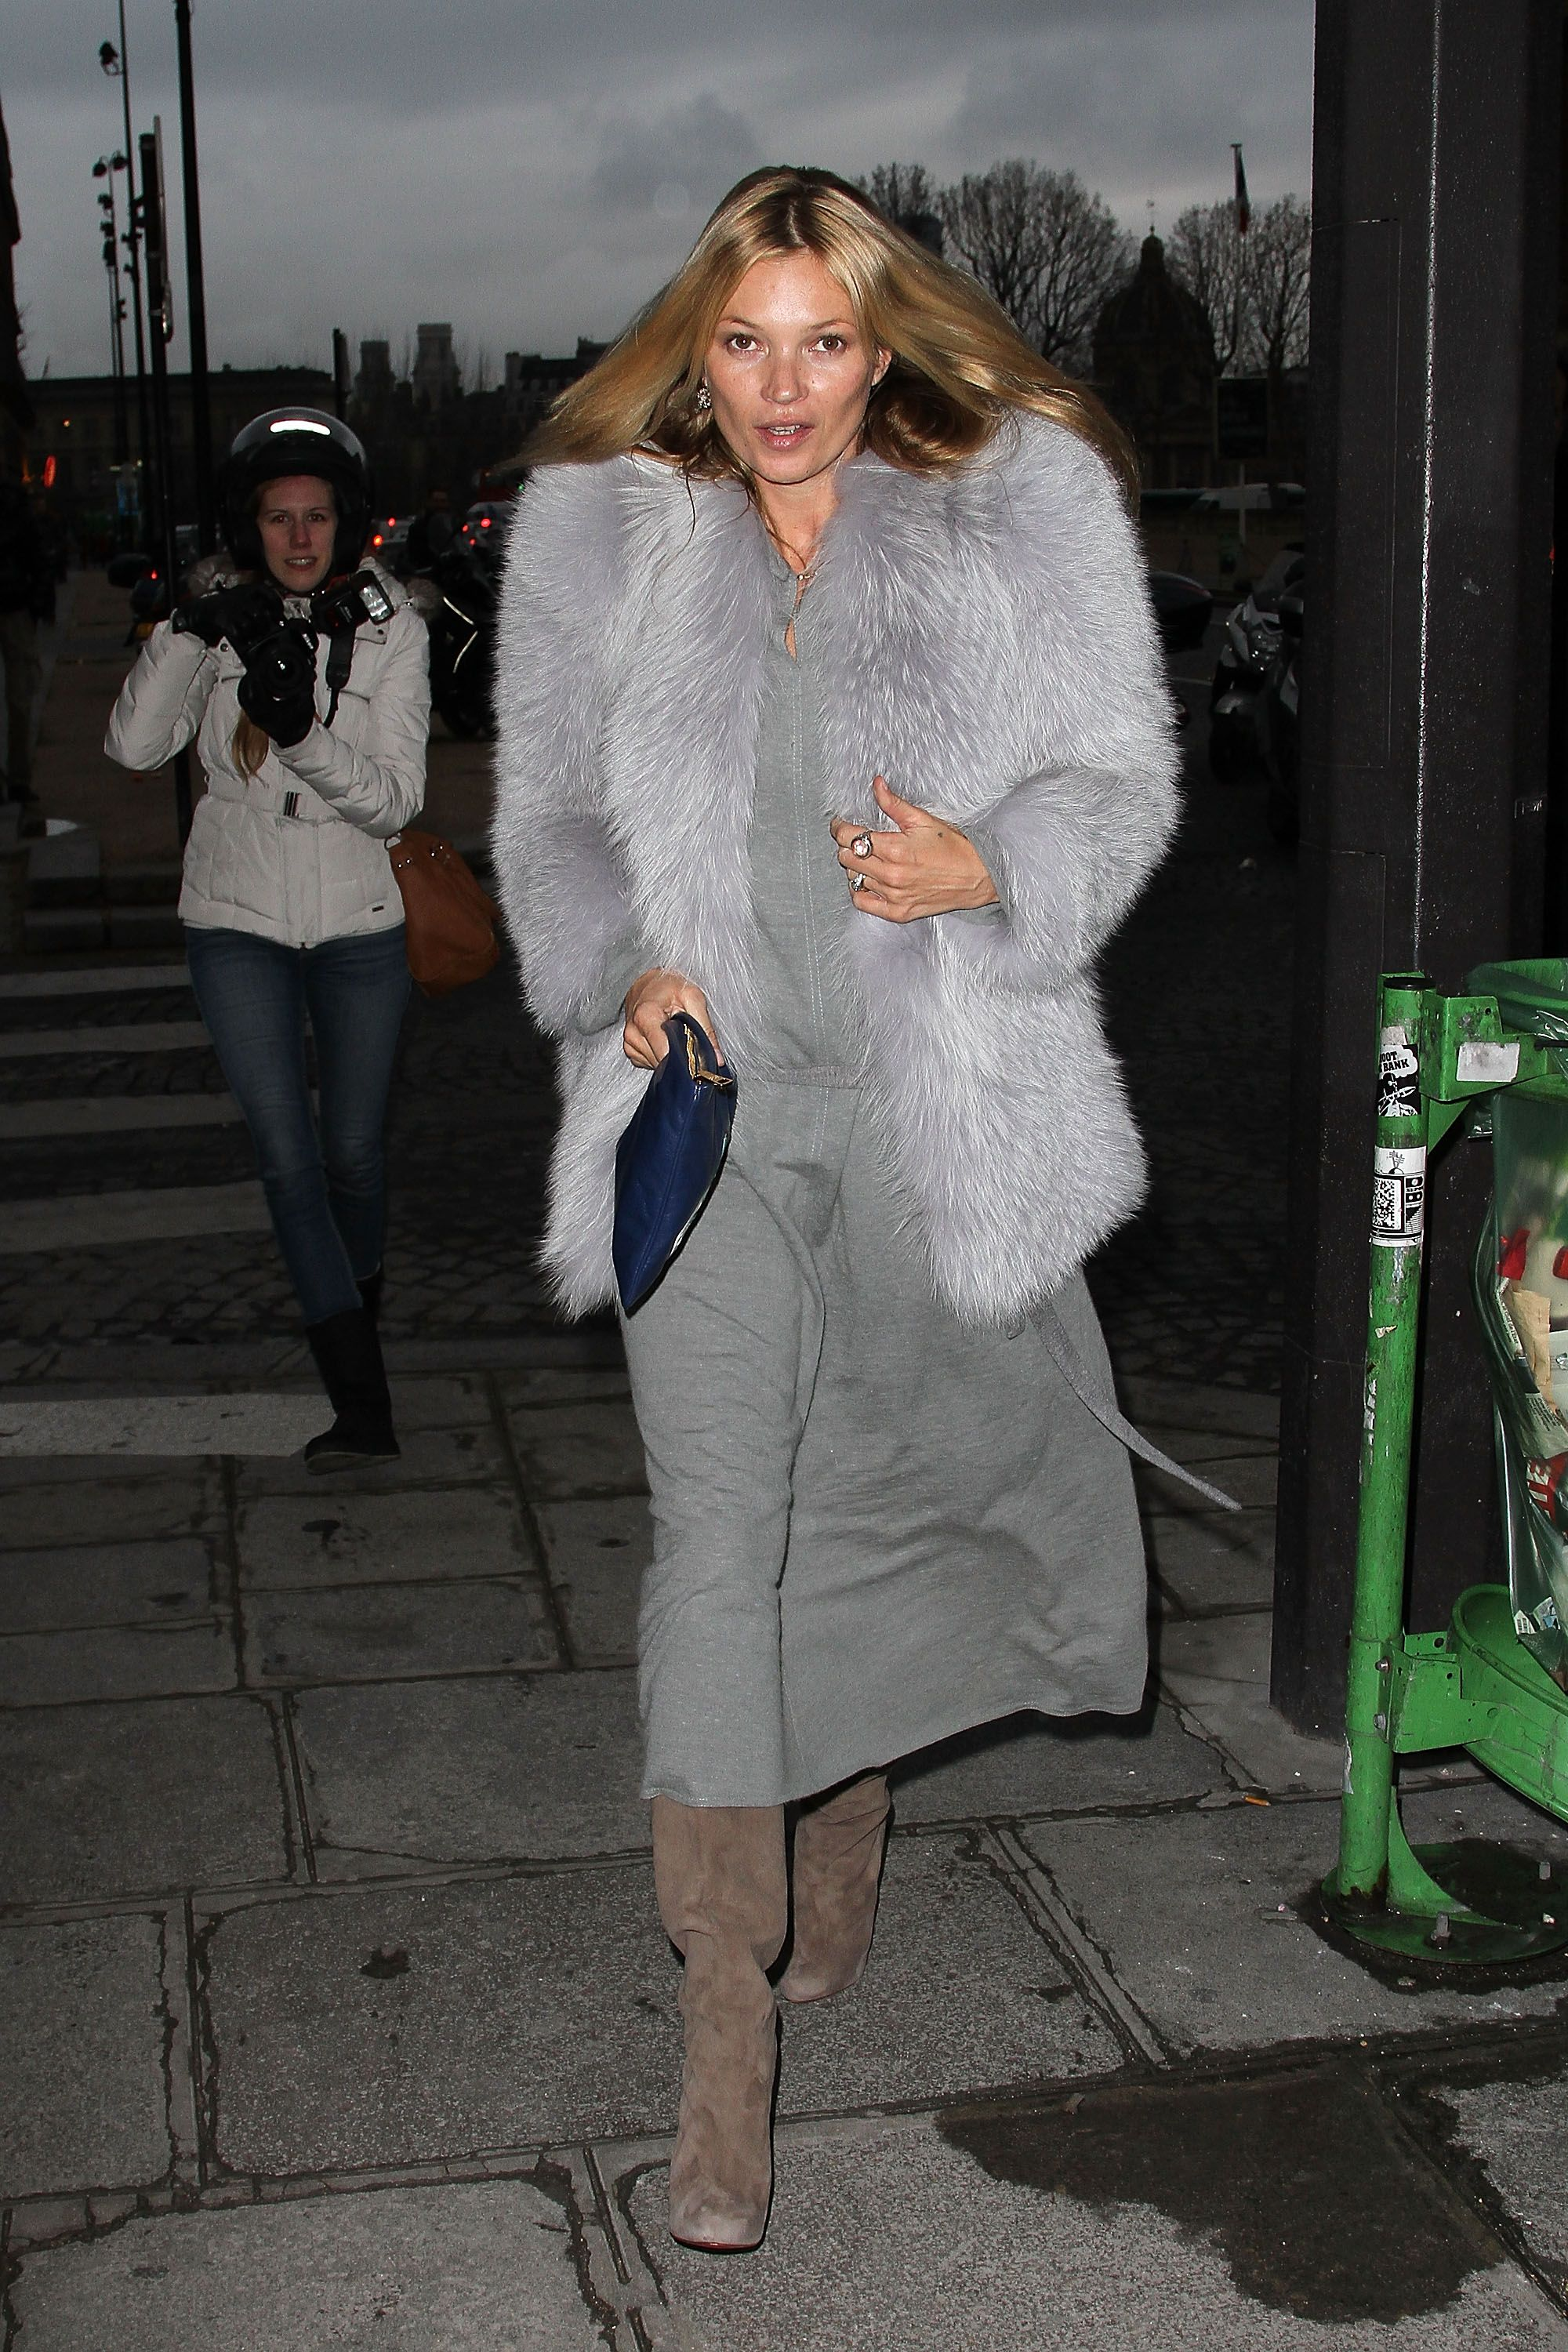 The queen of boho herself, Kate Moss, shows us fall fashion at its finest.